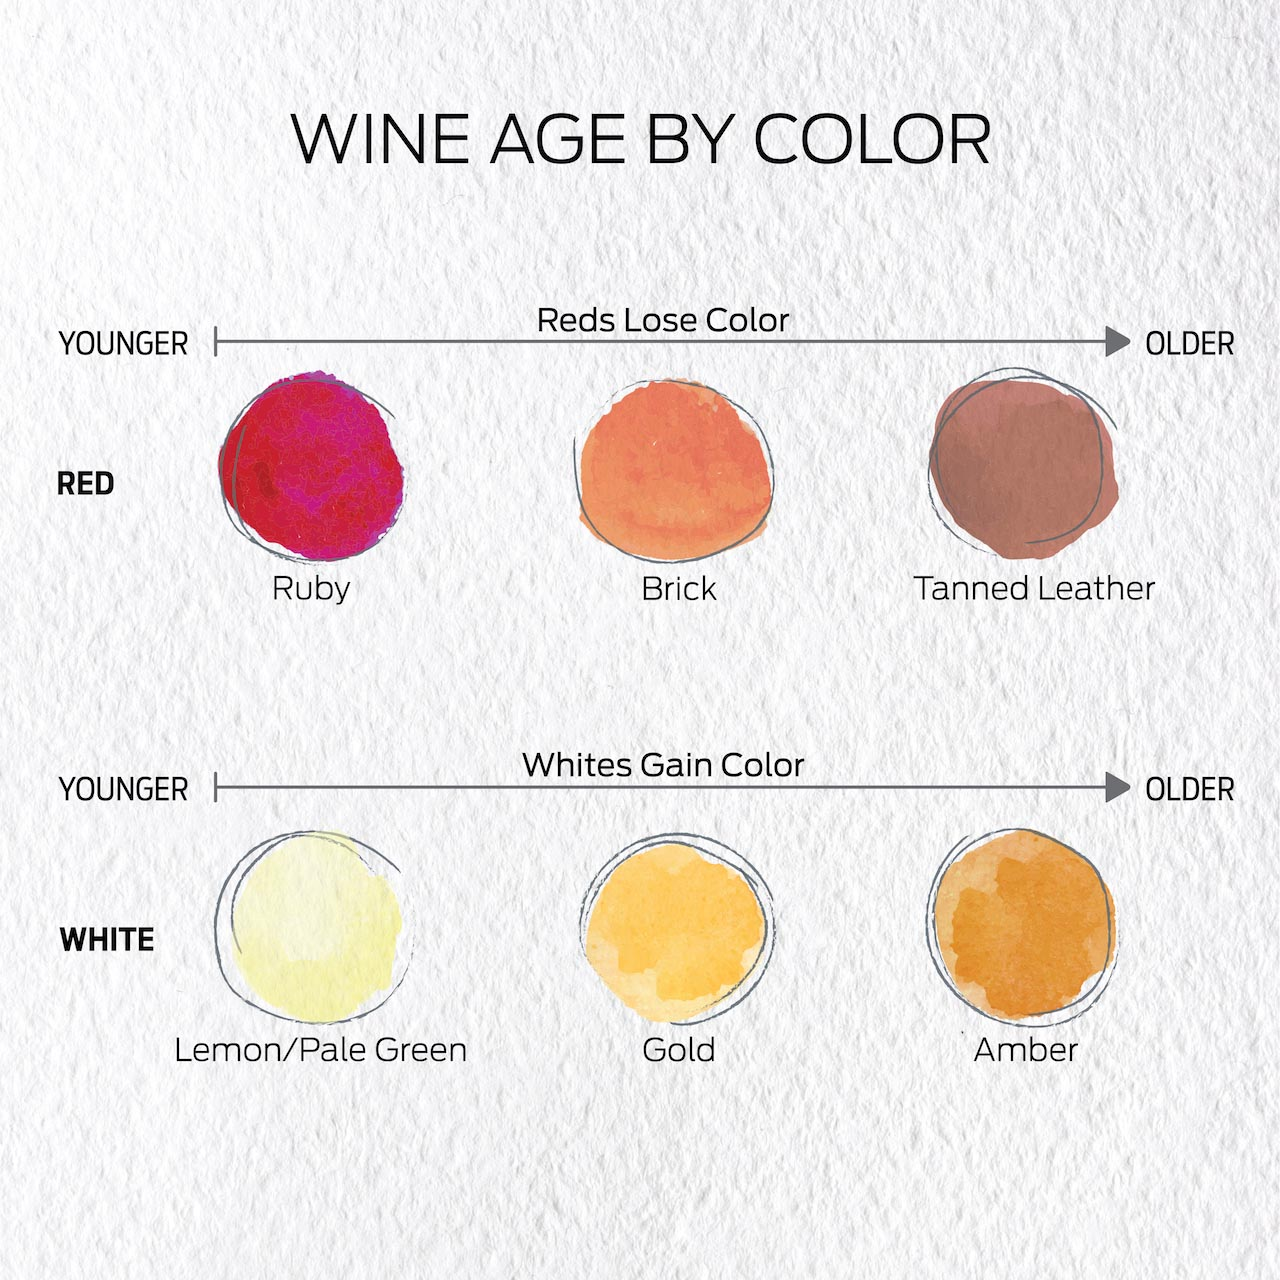 Wine Age by Color